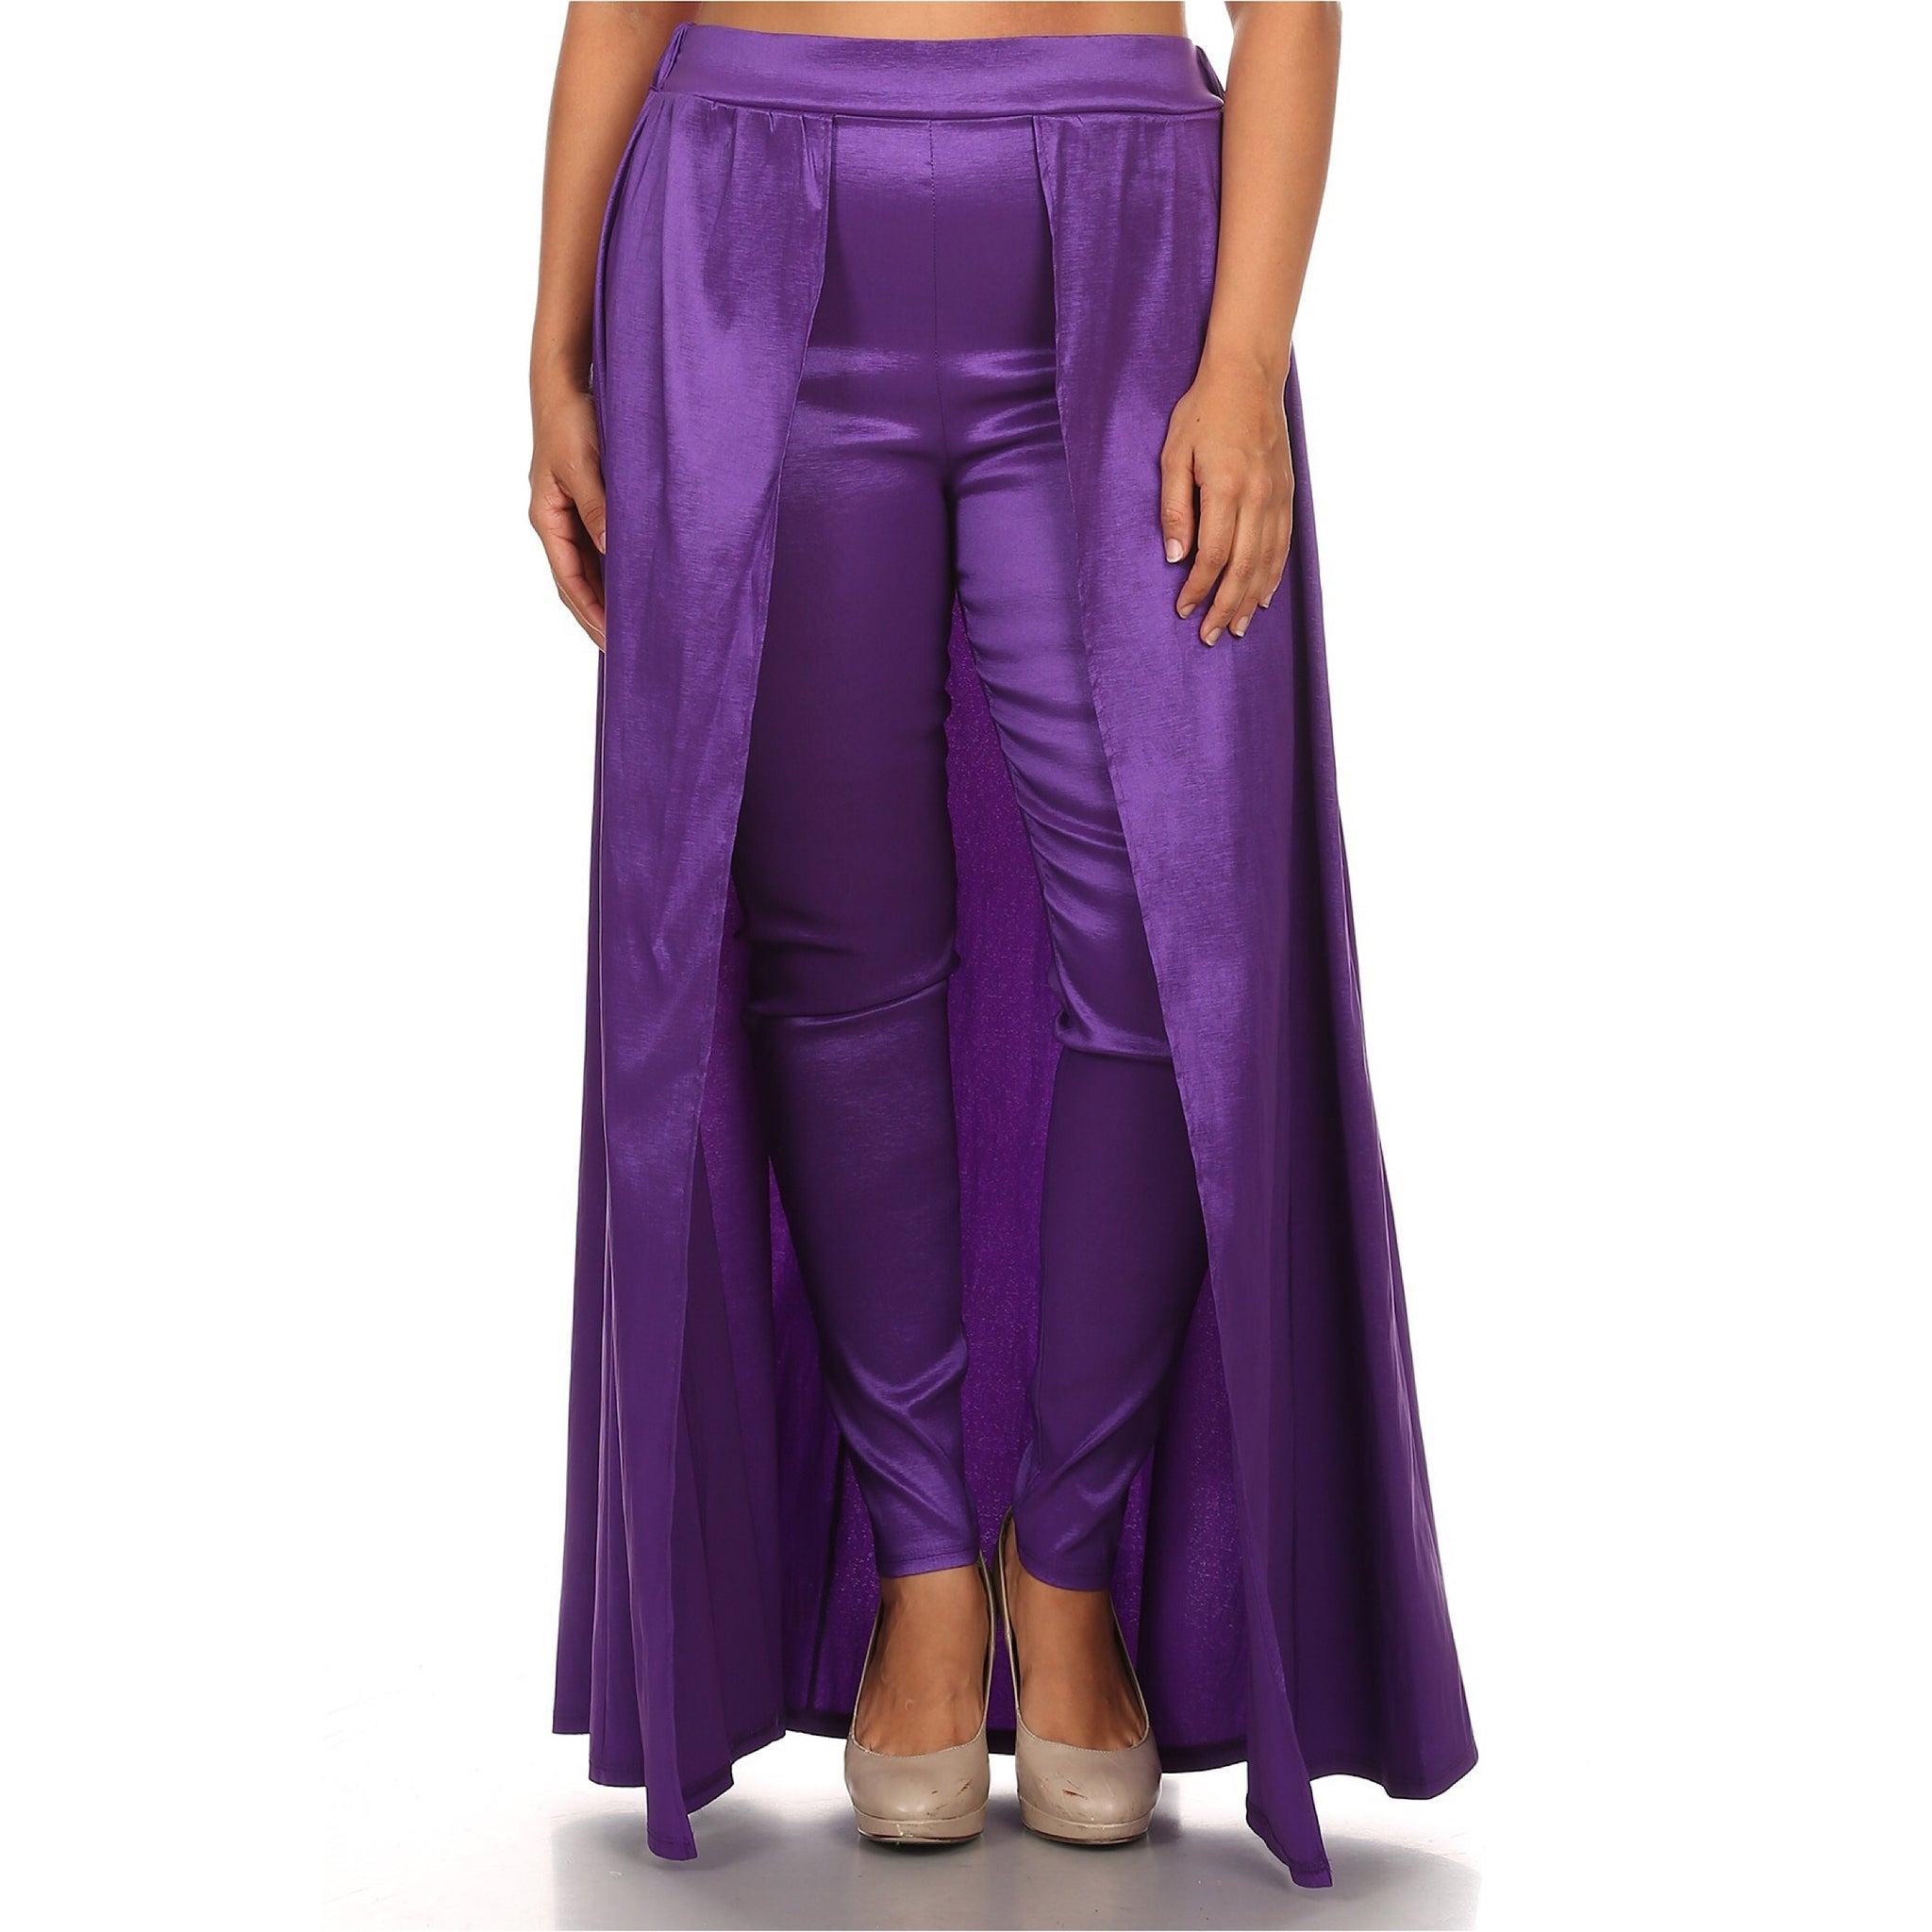 Purple Pant Skirt Combo - socialbutterflycollection-com (16679141390)